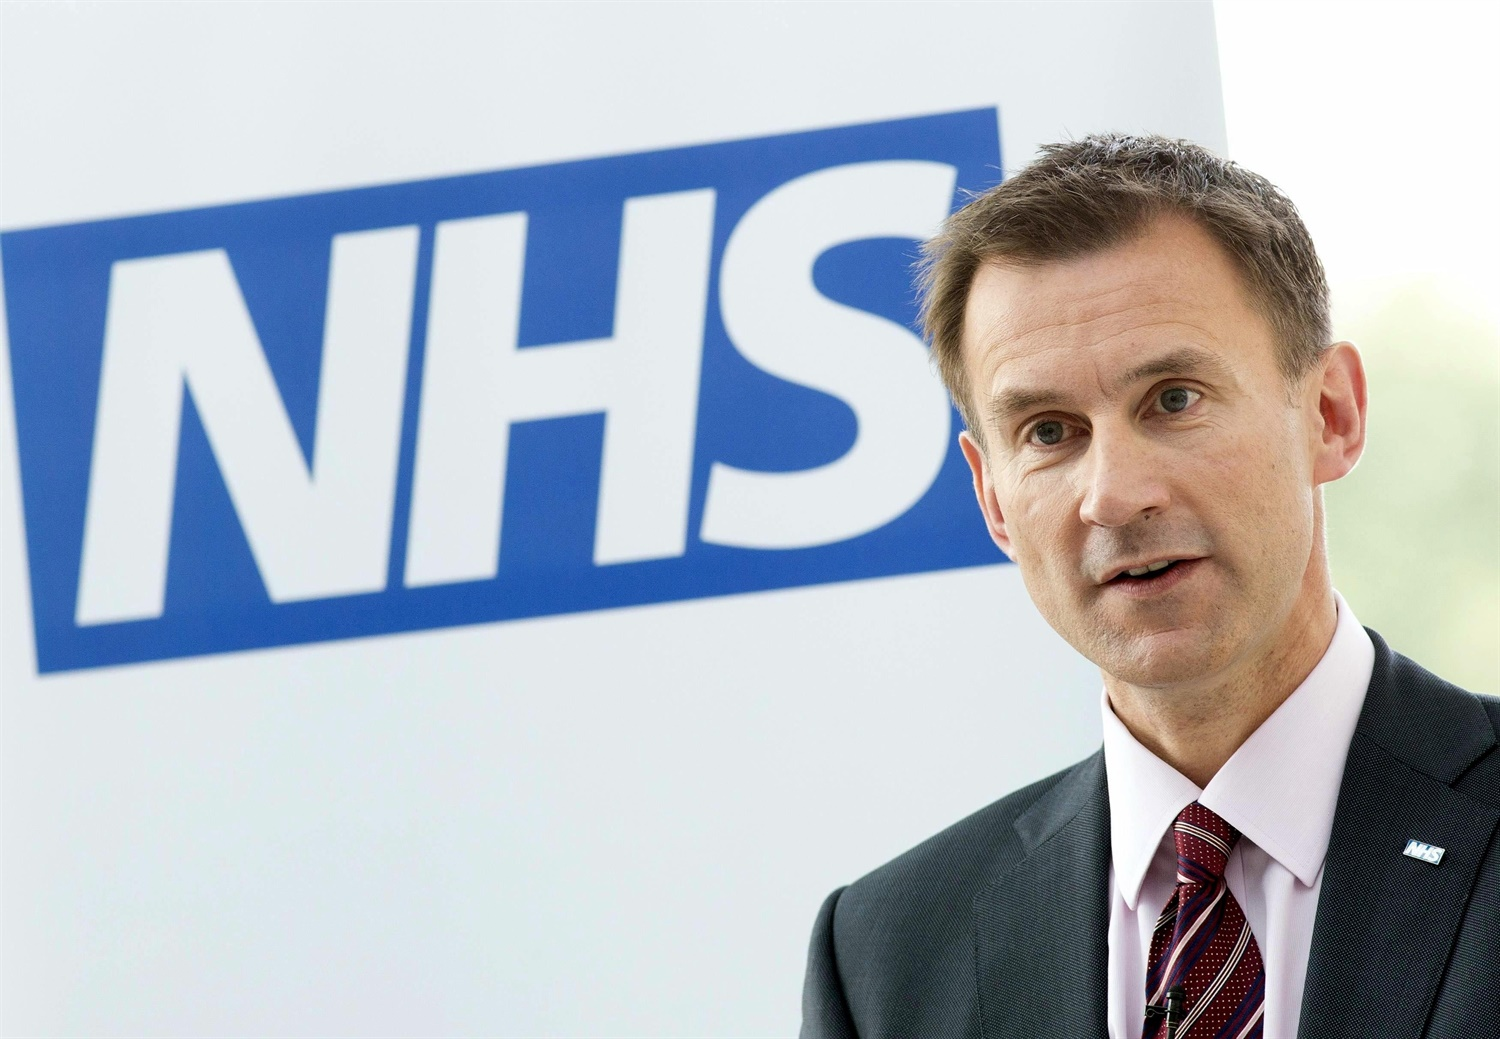 NHS staff to be trained in AI and robotics, Hunt announces